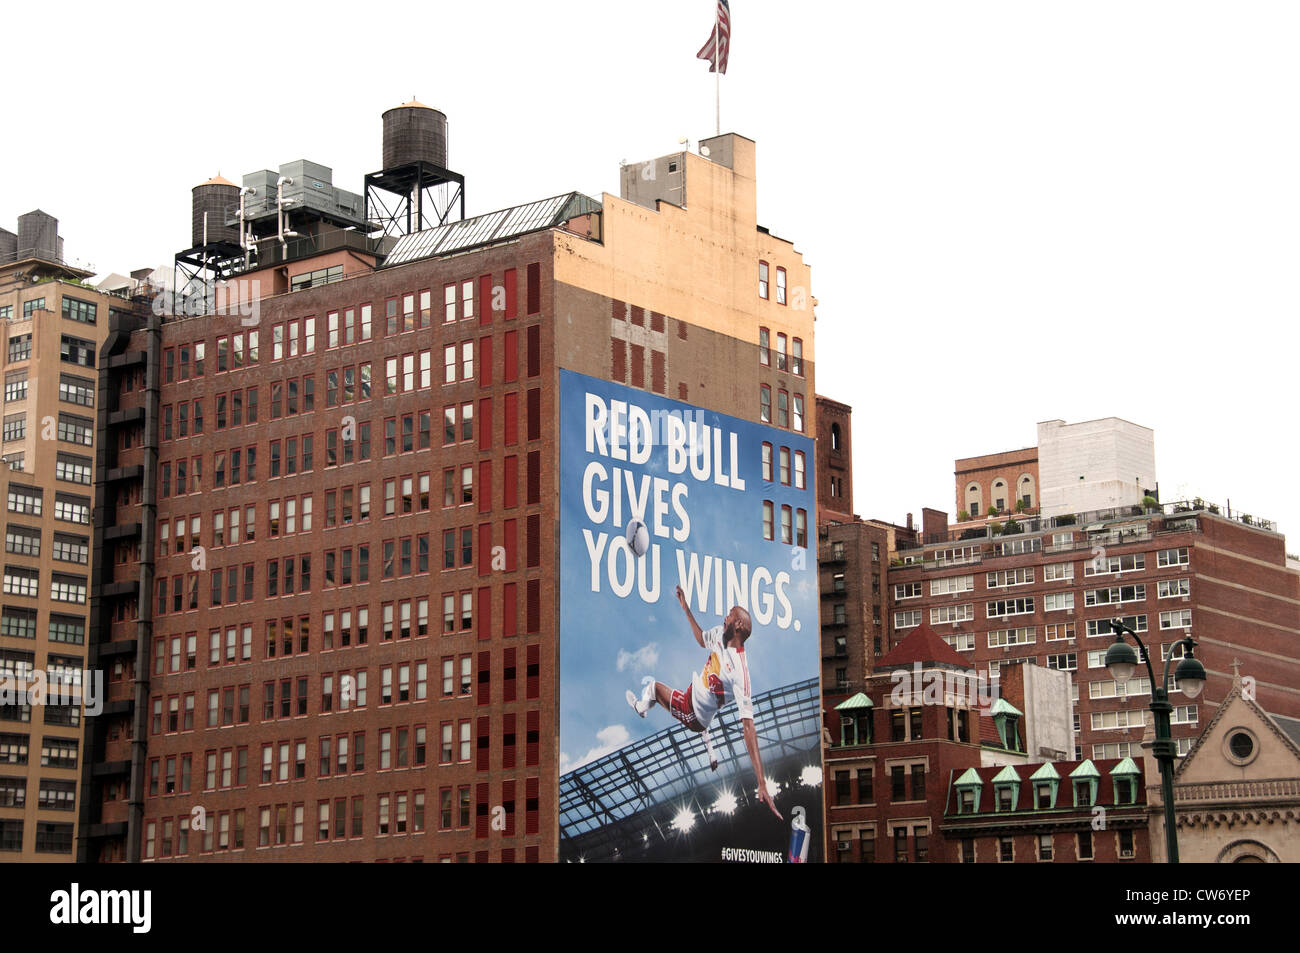 Red Bull Gives Your Wings Billboard Advertising Tennis New York City Manhattan - Stock Image